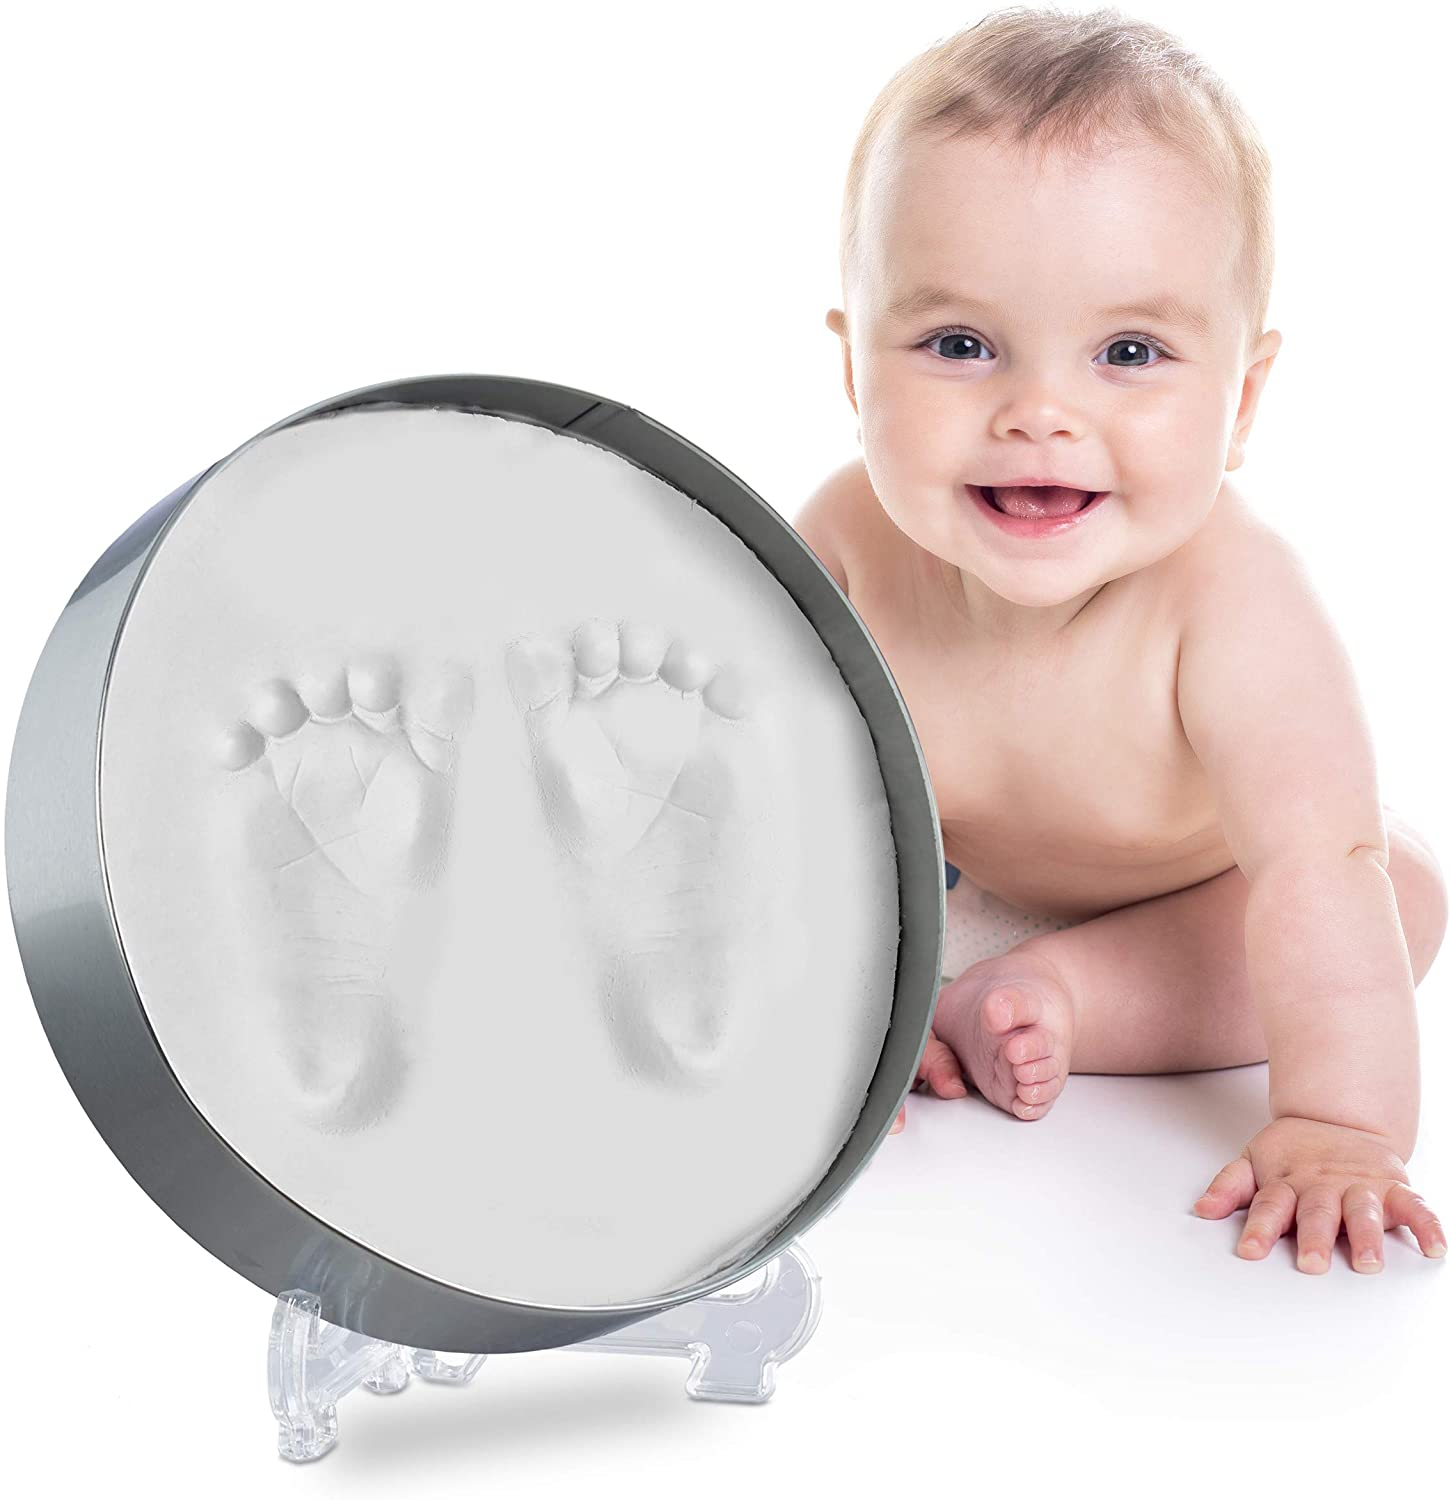 Relaxdays Baby Casting Set, for Footprints and Handprints, Round Infant Imprint Kit, Complete, HxWxD: 16 x 16 x 4 cm, White